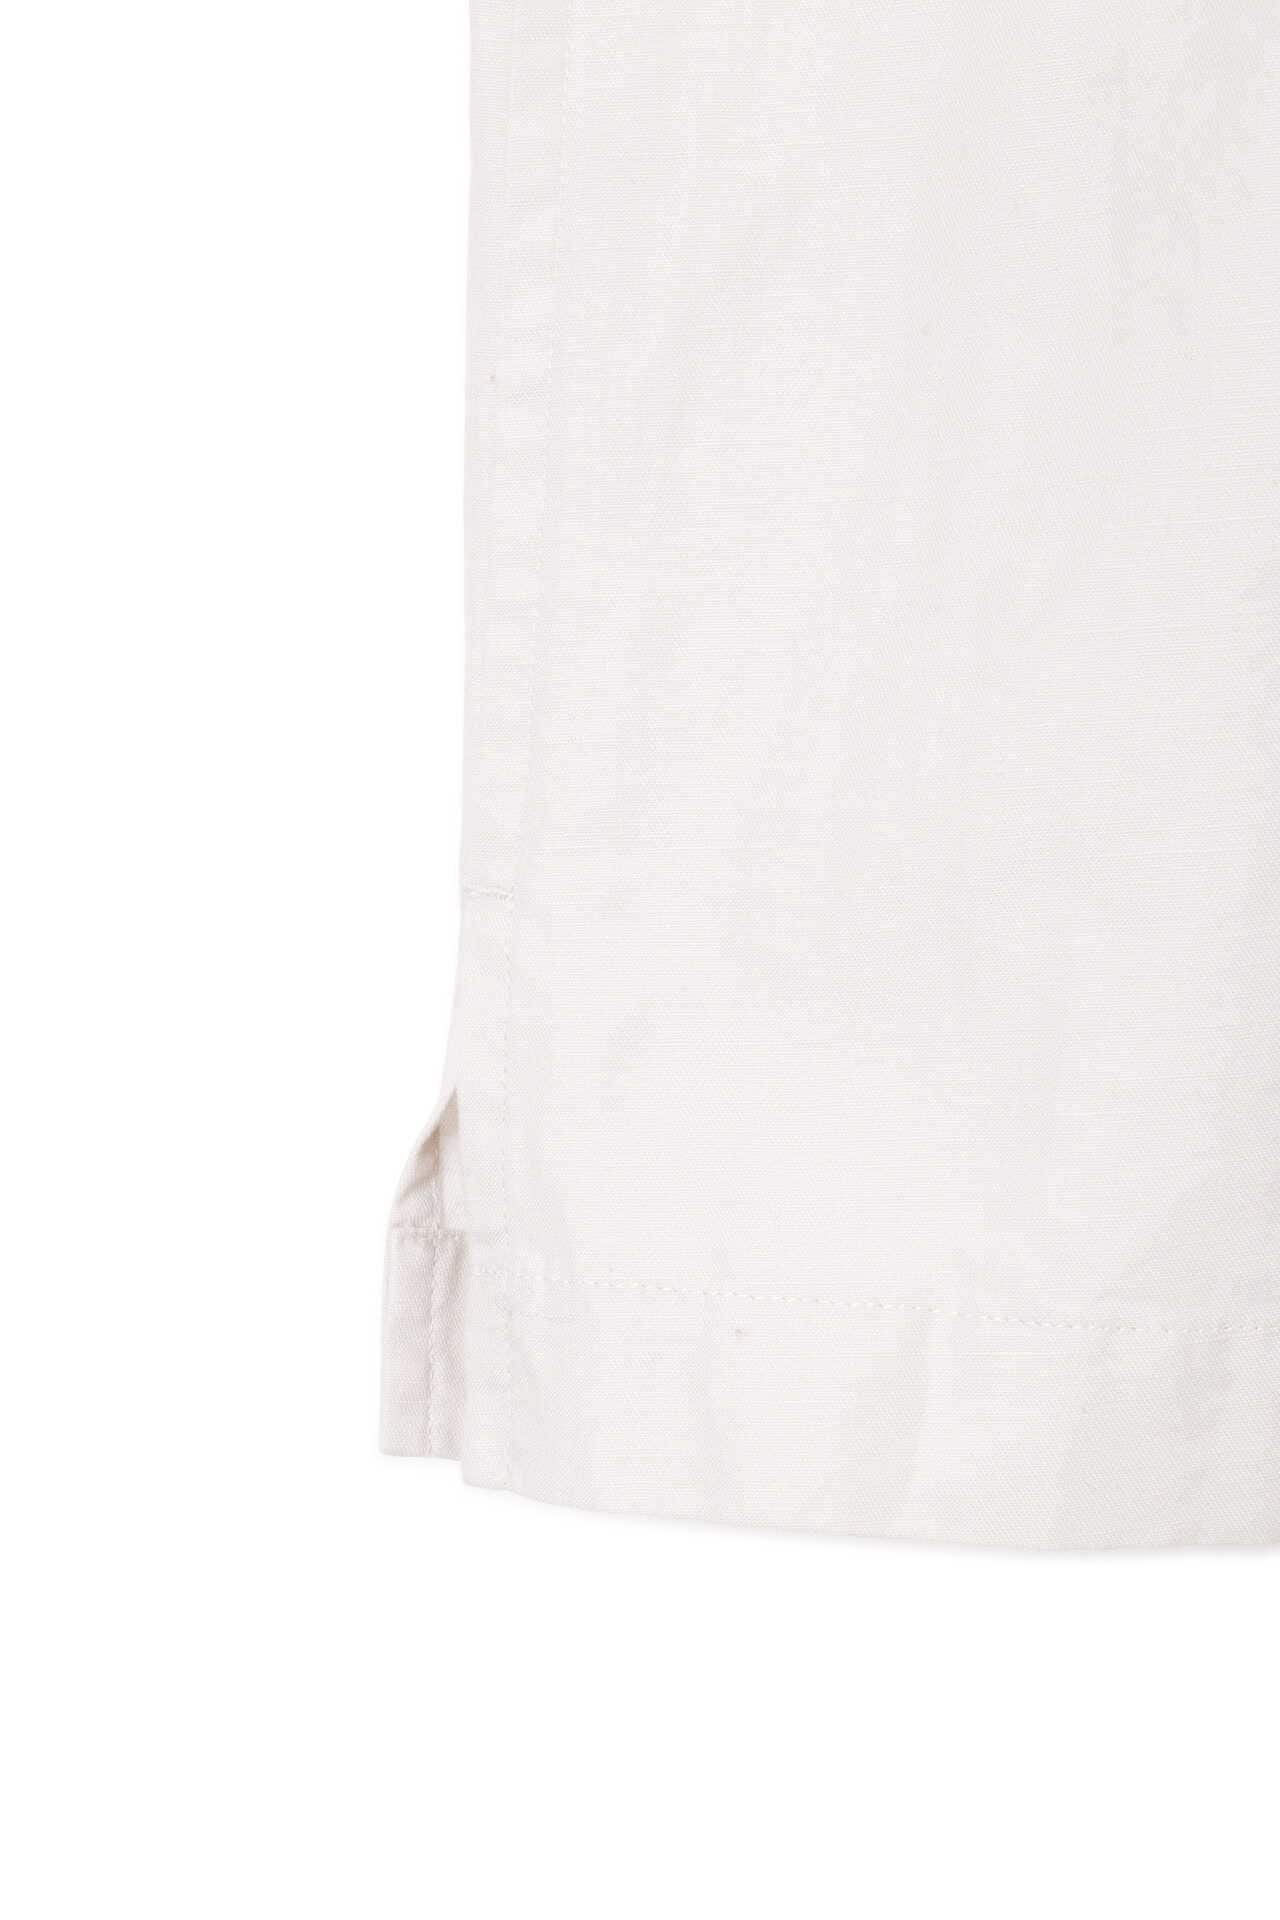 COTTON LINEN TWILL6